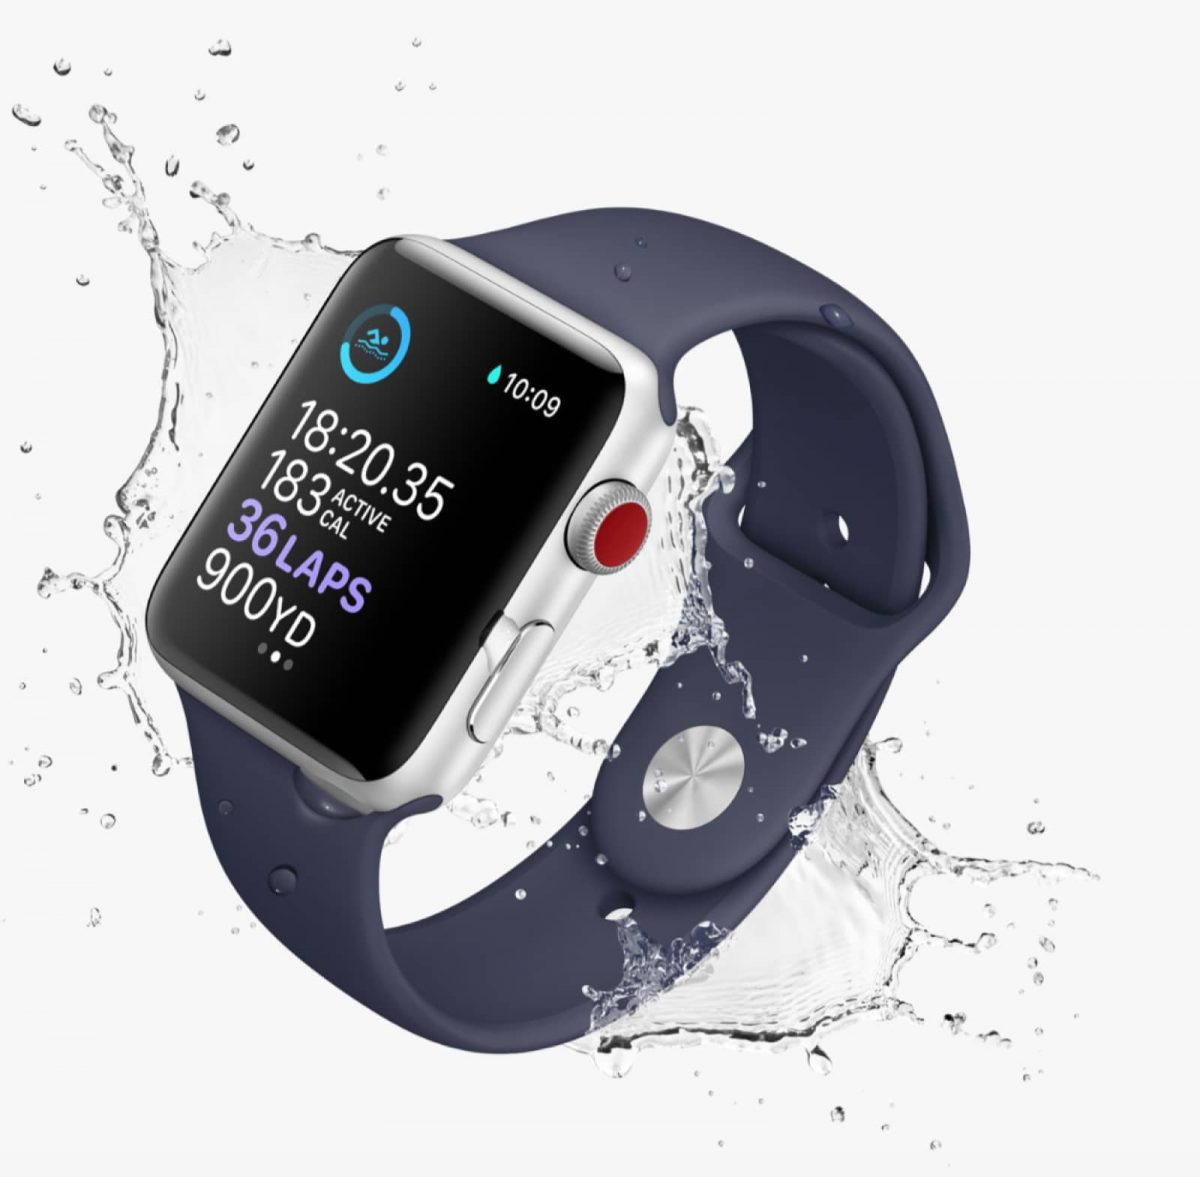 Apple Watch LTE image.